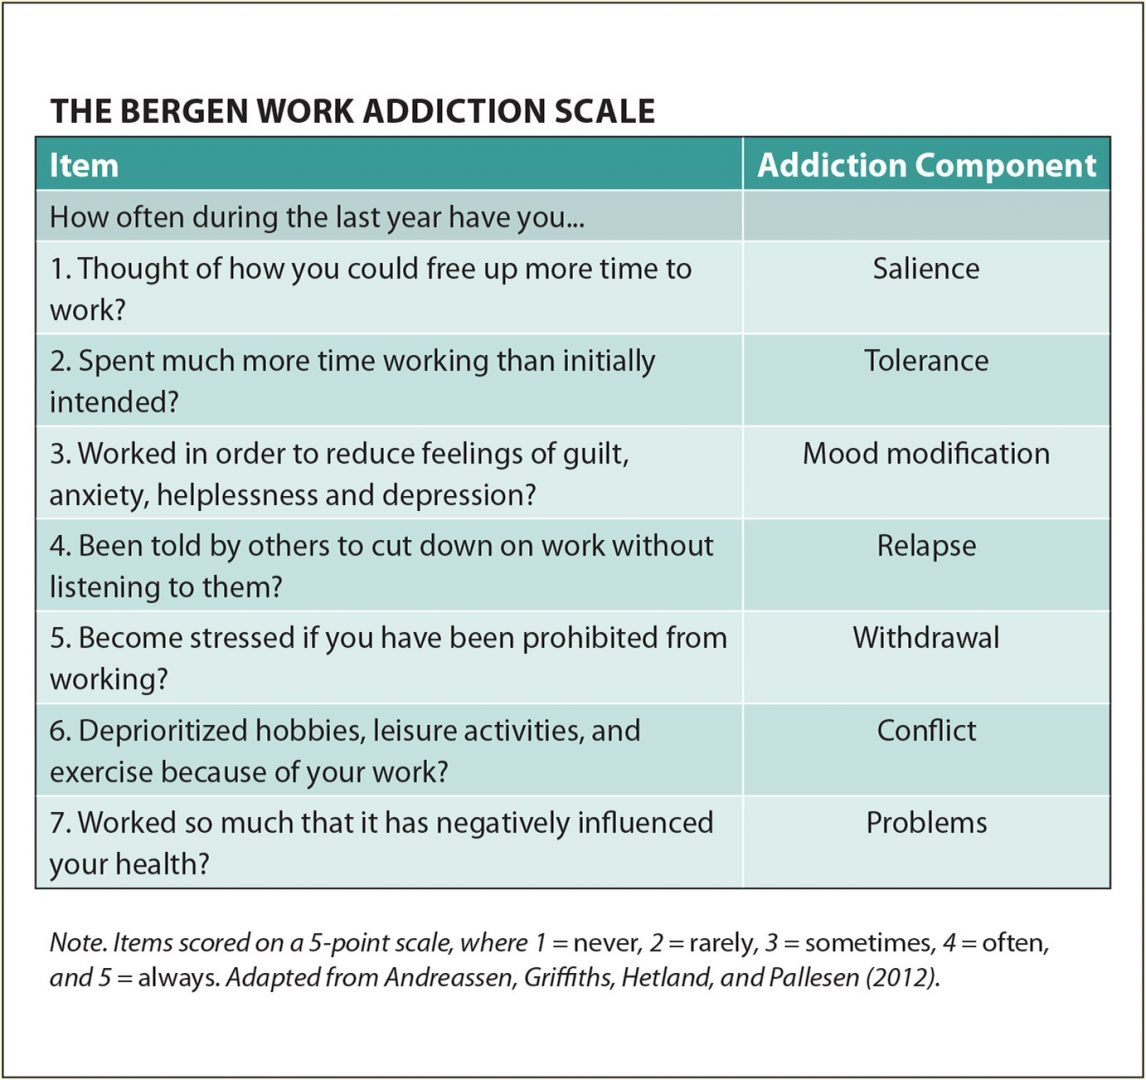 The Bergen Work Addiction Scale